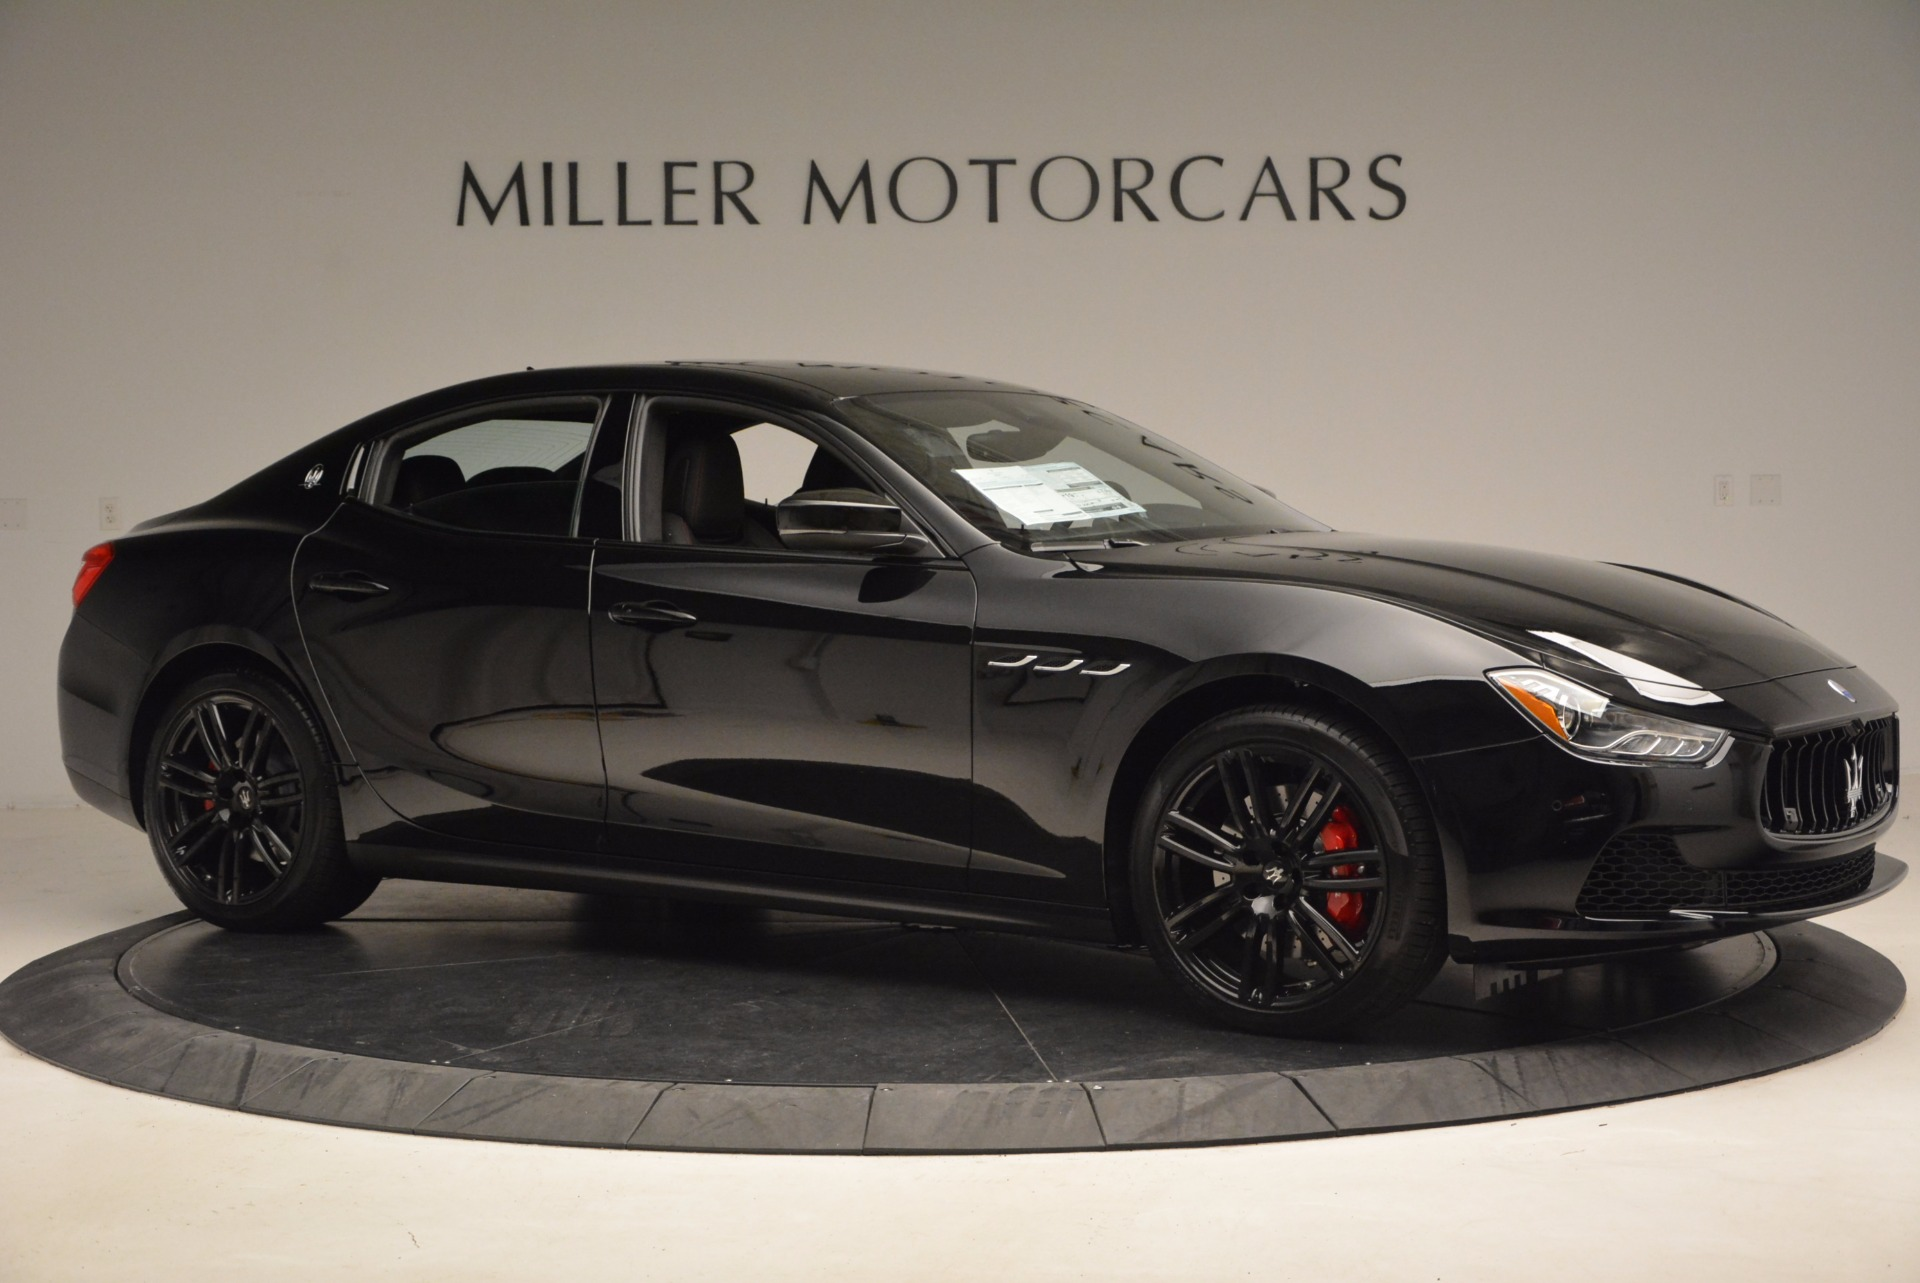 New 2017 Maserati Ghibli Nerissimo Edition S Q4 For Sale In Greenwich, CT 1405_p10